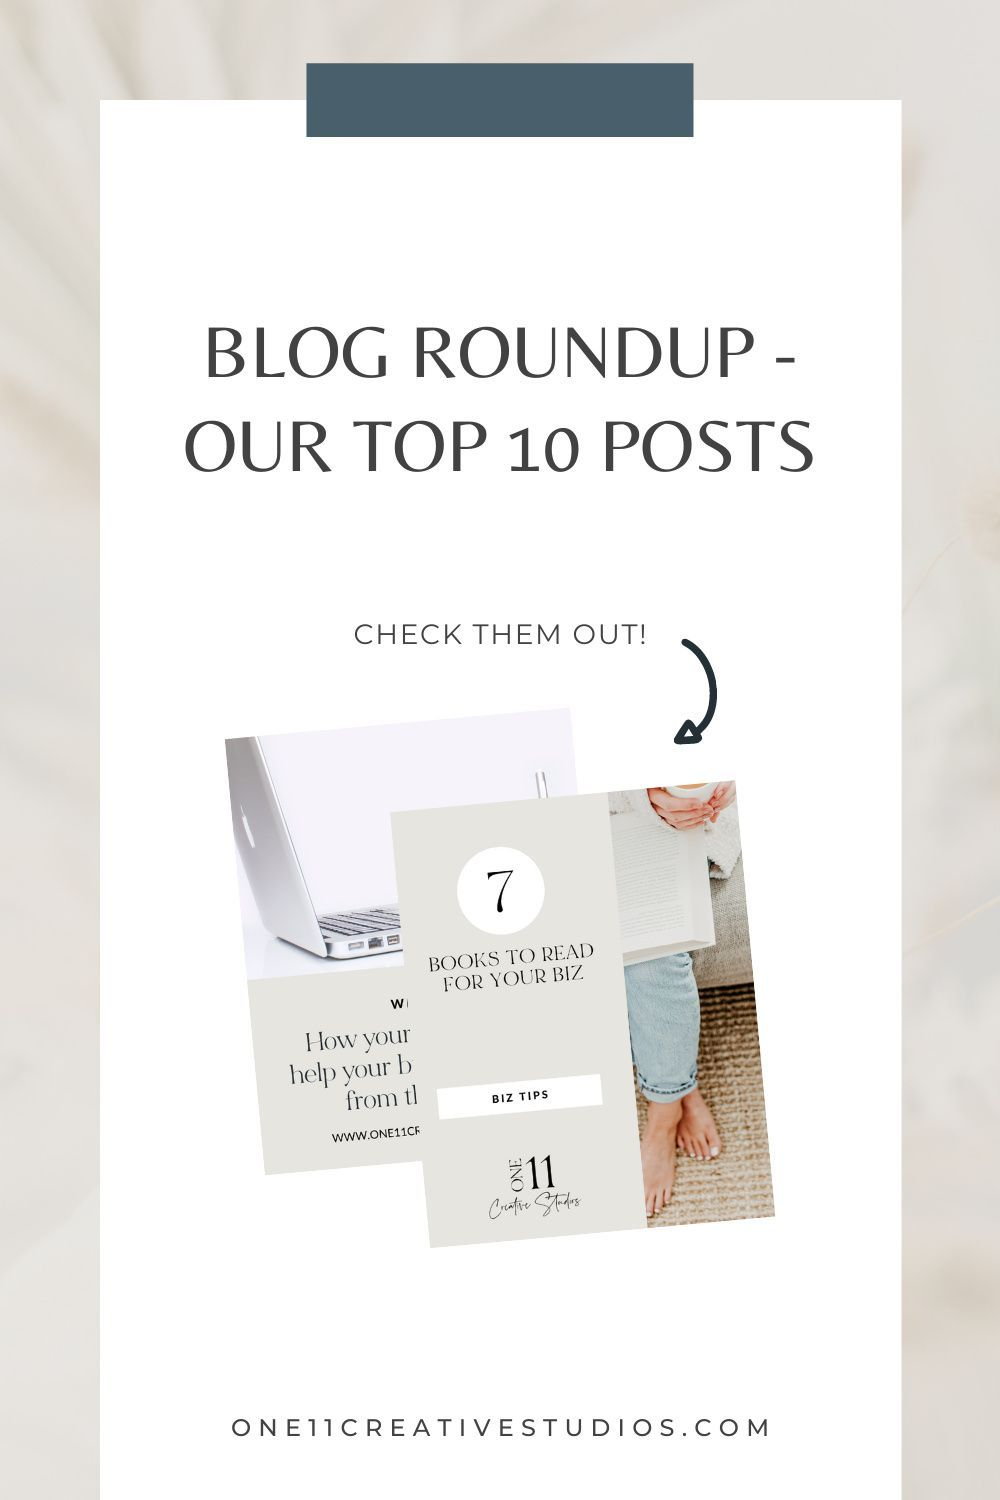 Blog Roundup Our Top 10 Posts In 2020 Writing Blog Posts Web Design Tips Web Design